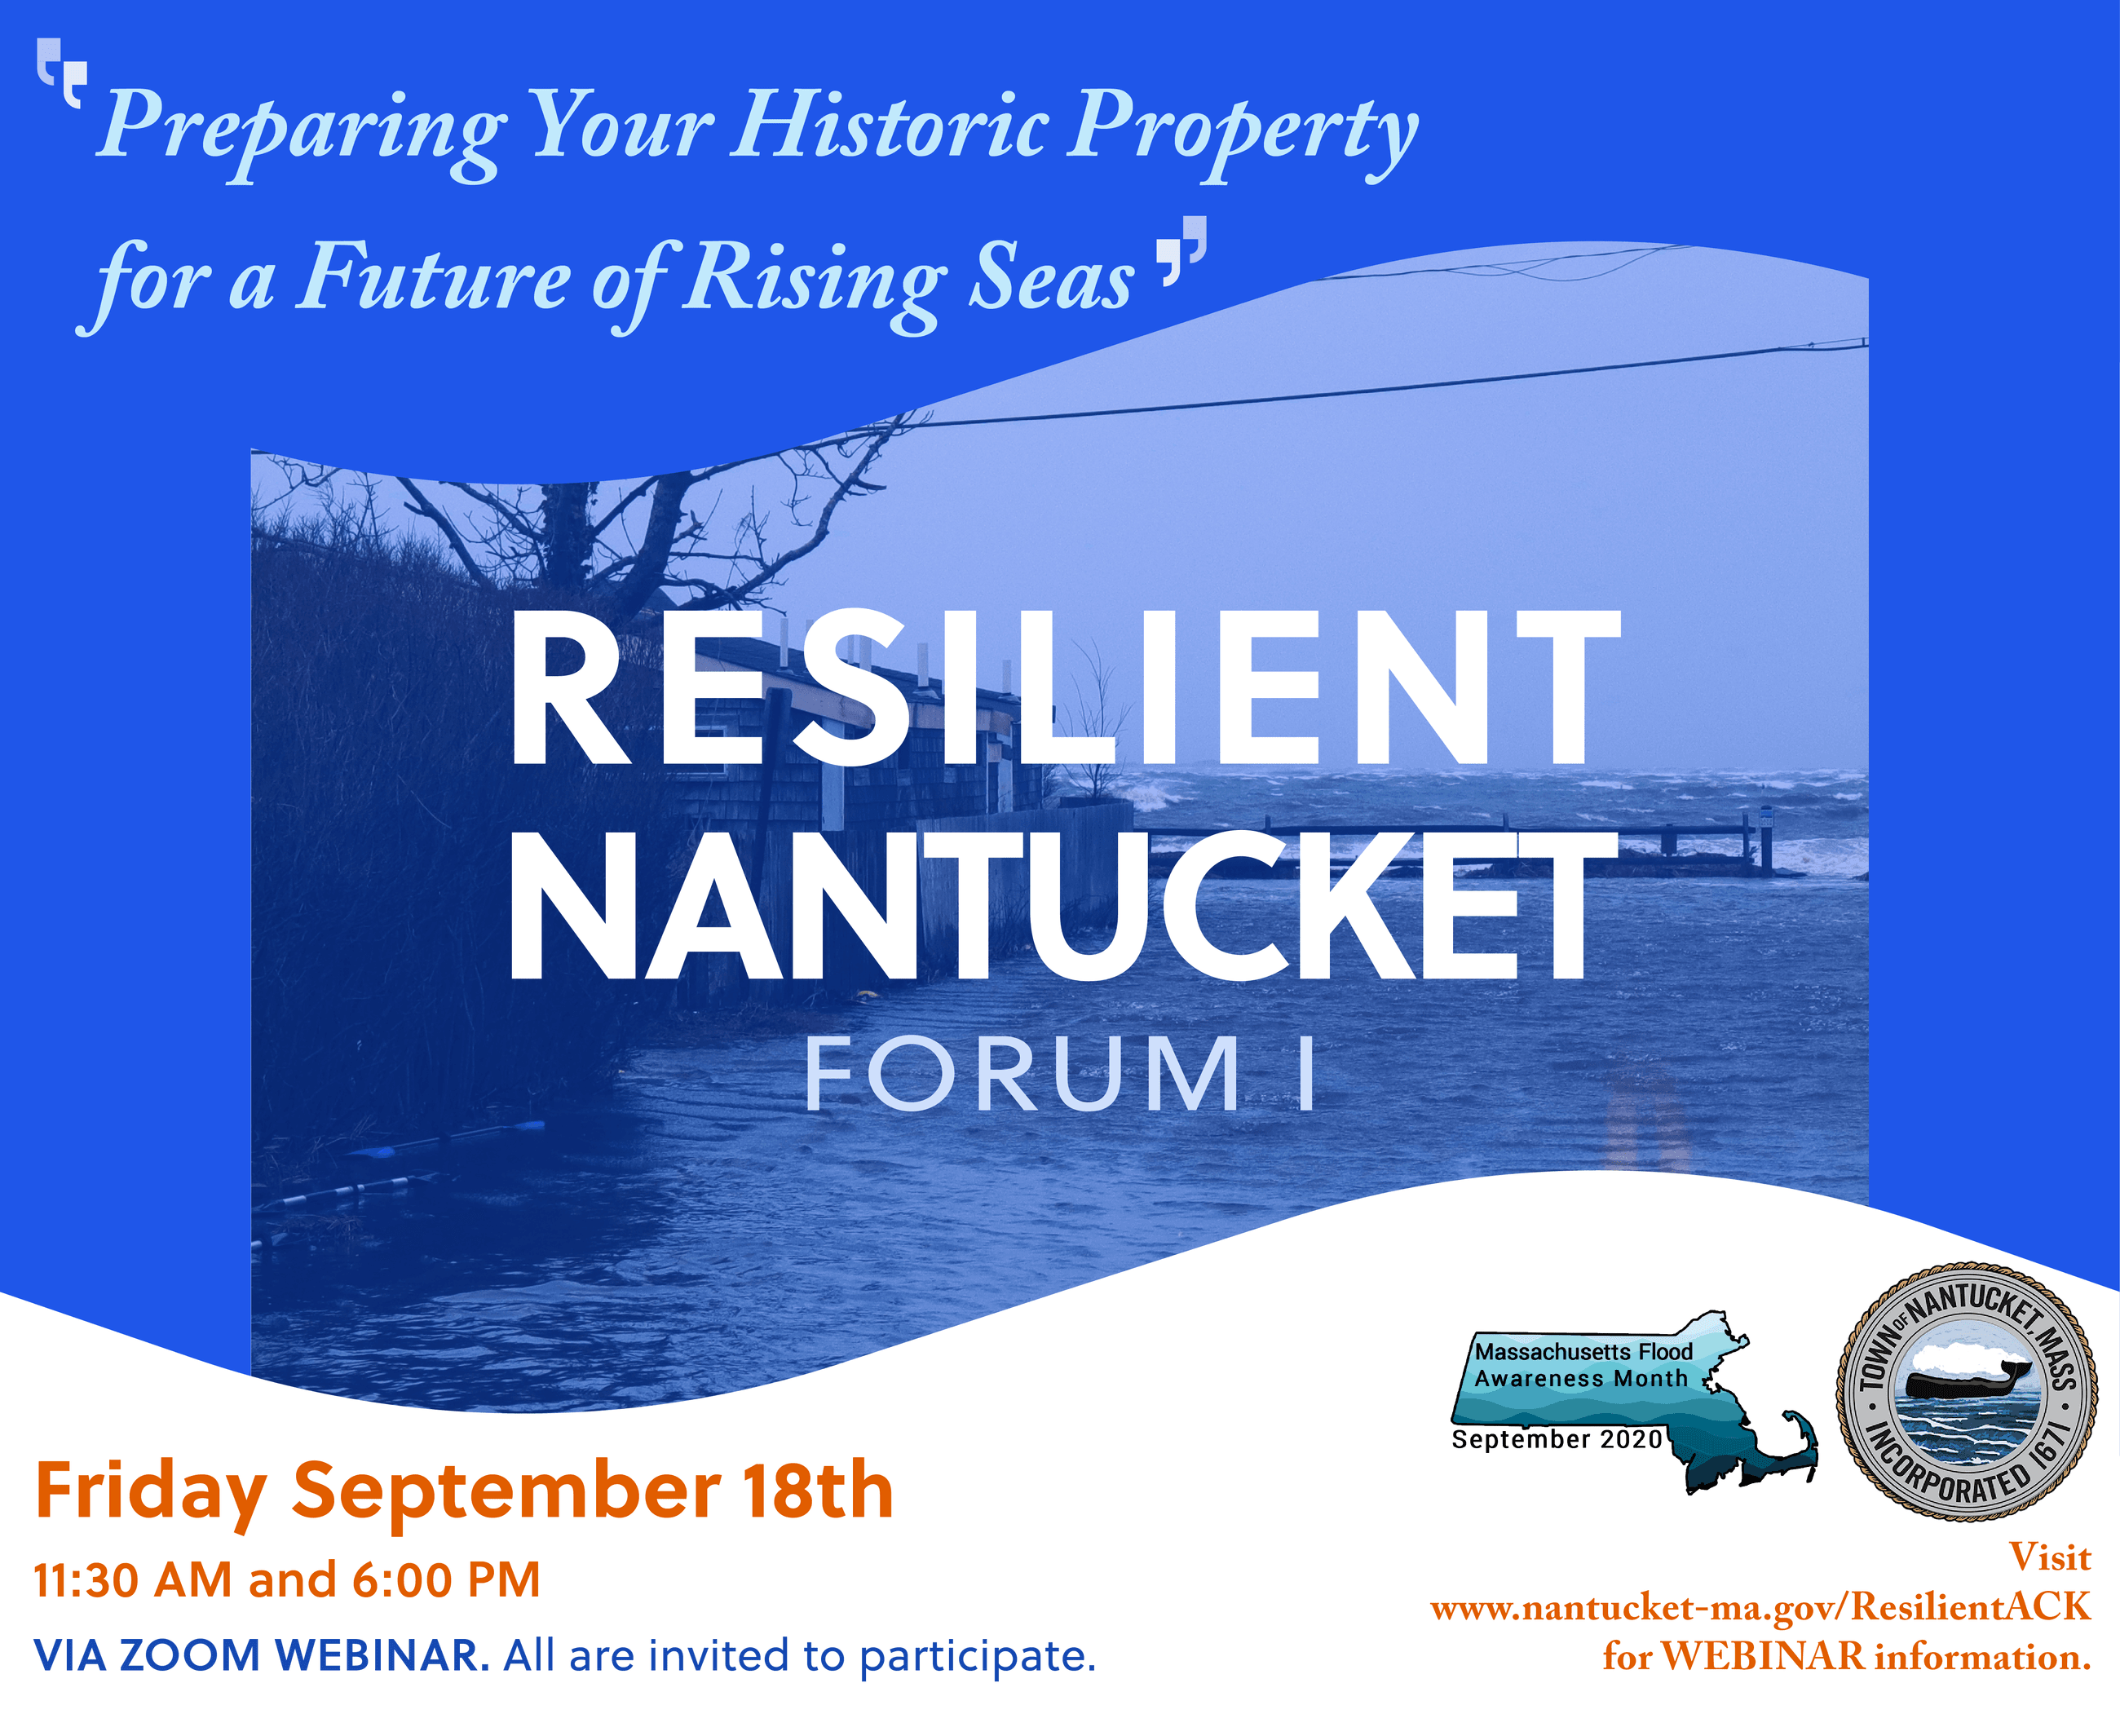 Resilient Nantucket forum 1 Opens in new window